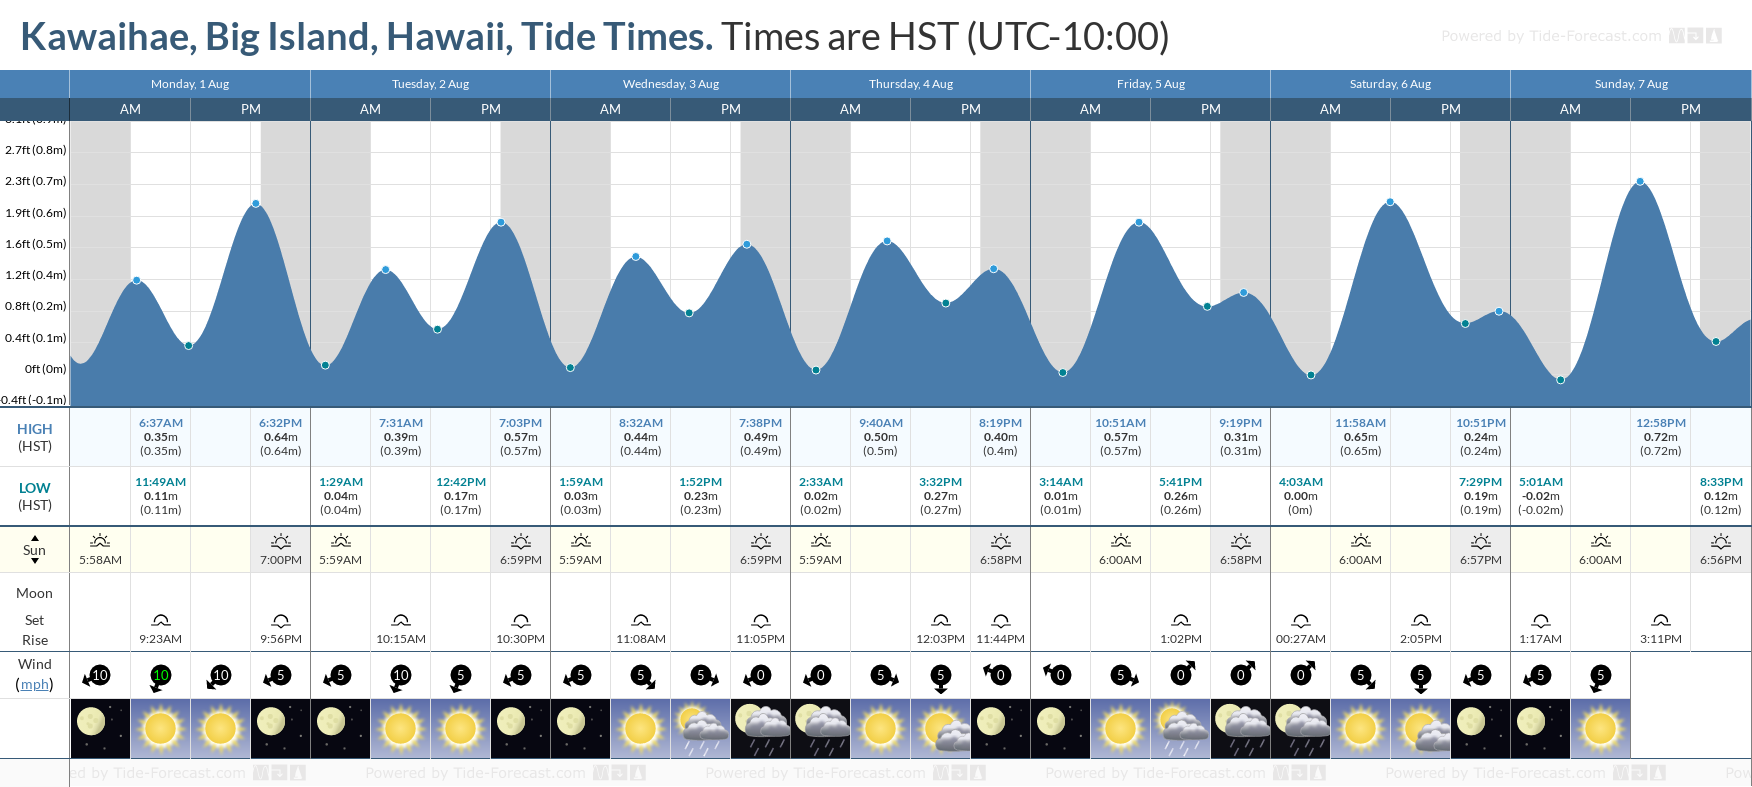 Kawaihae, Big Island, Hawaii Tide Chart including high and low tide tide times for the next 7 days